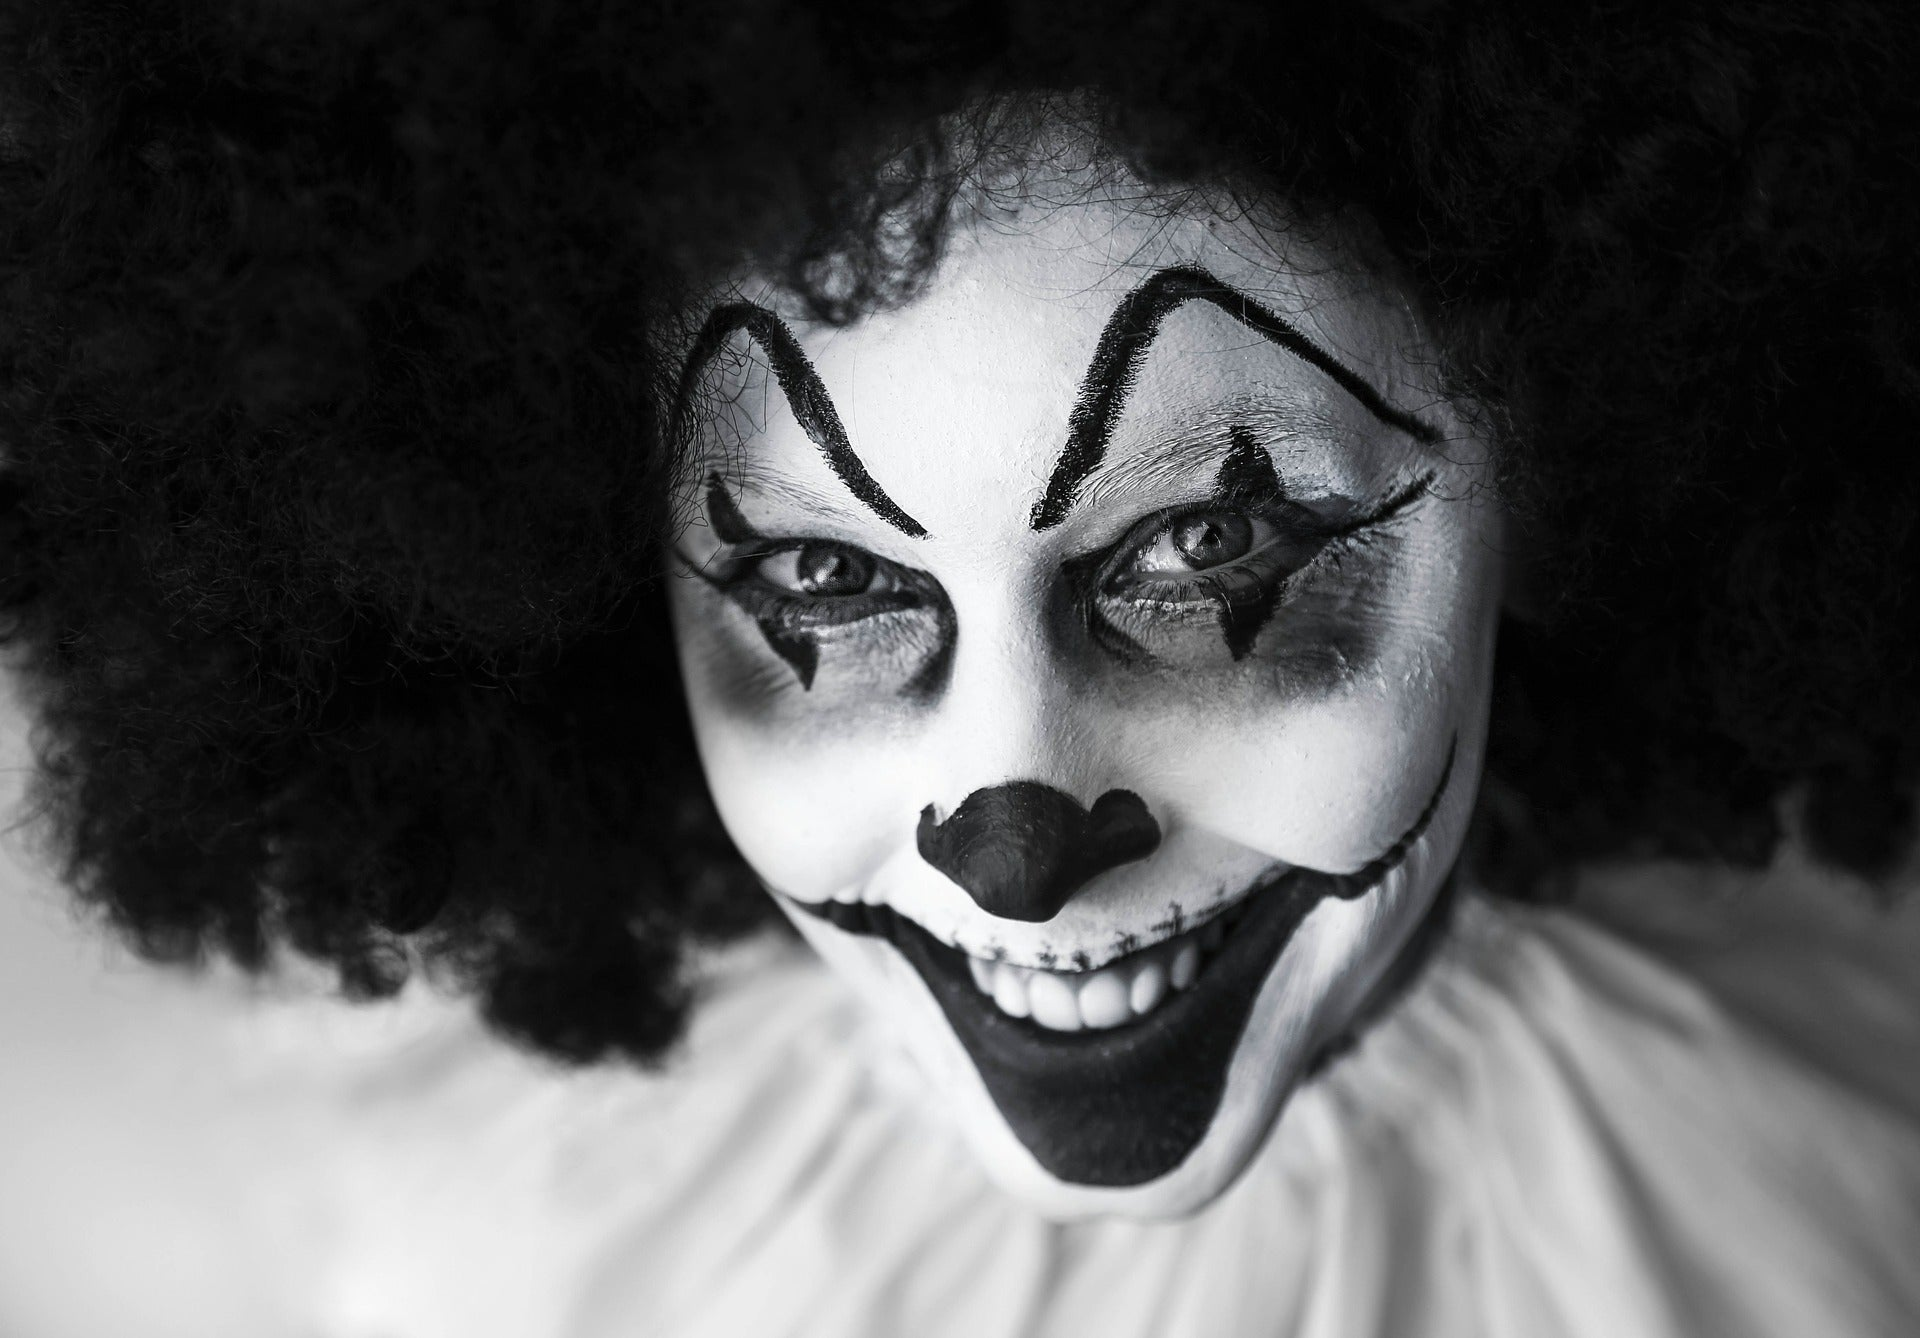 Black and white image of a creepy grinning clown, for AutoBrush